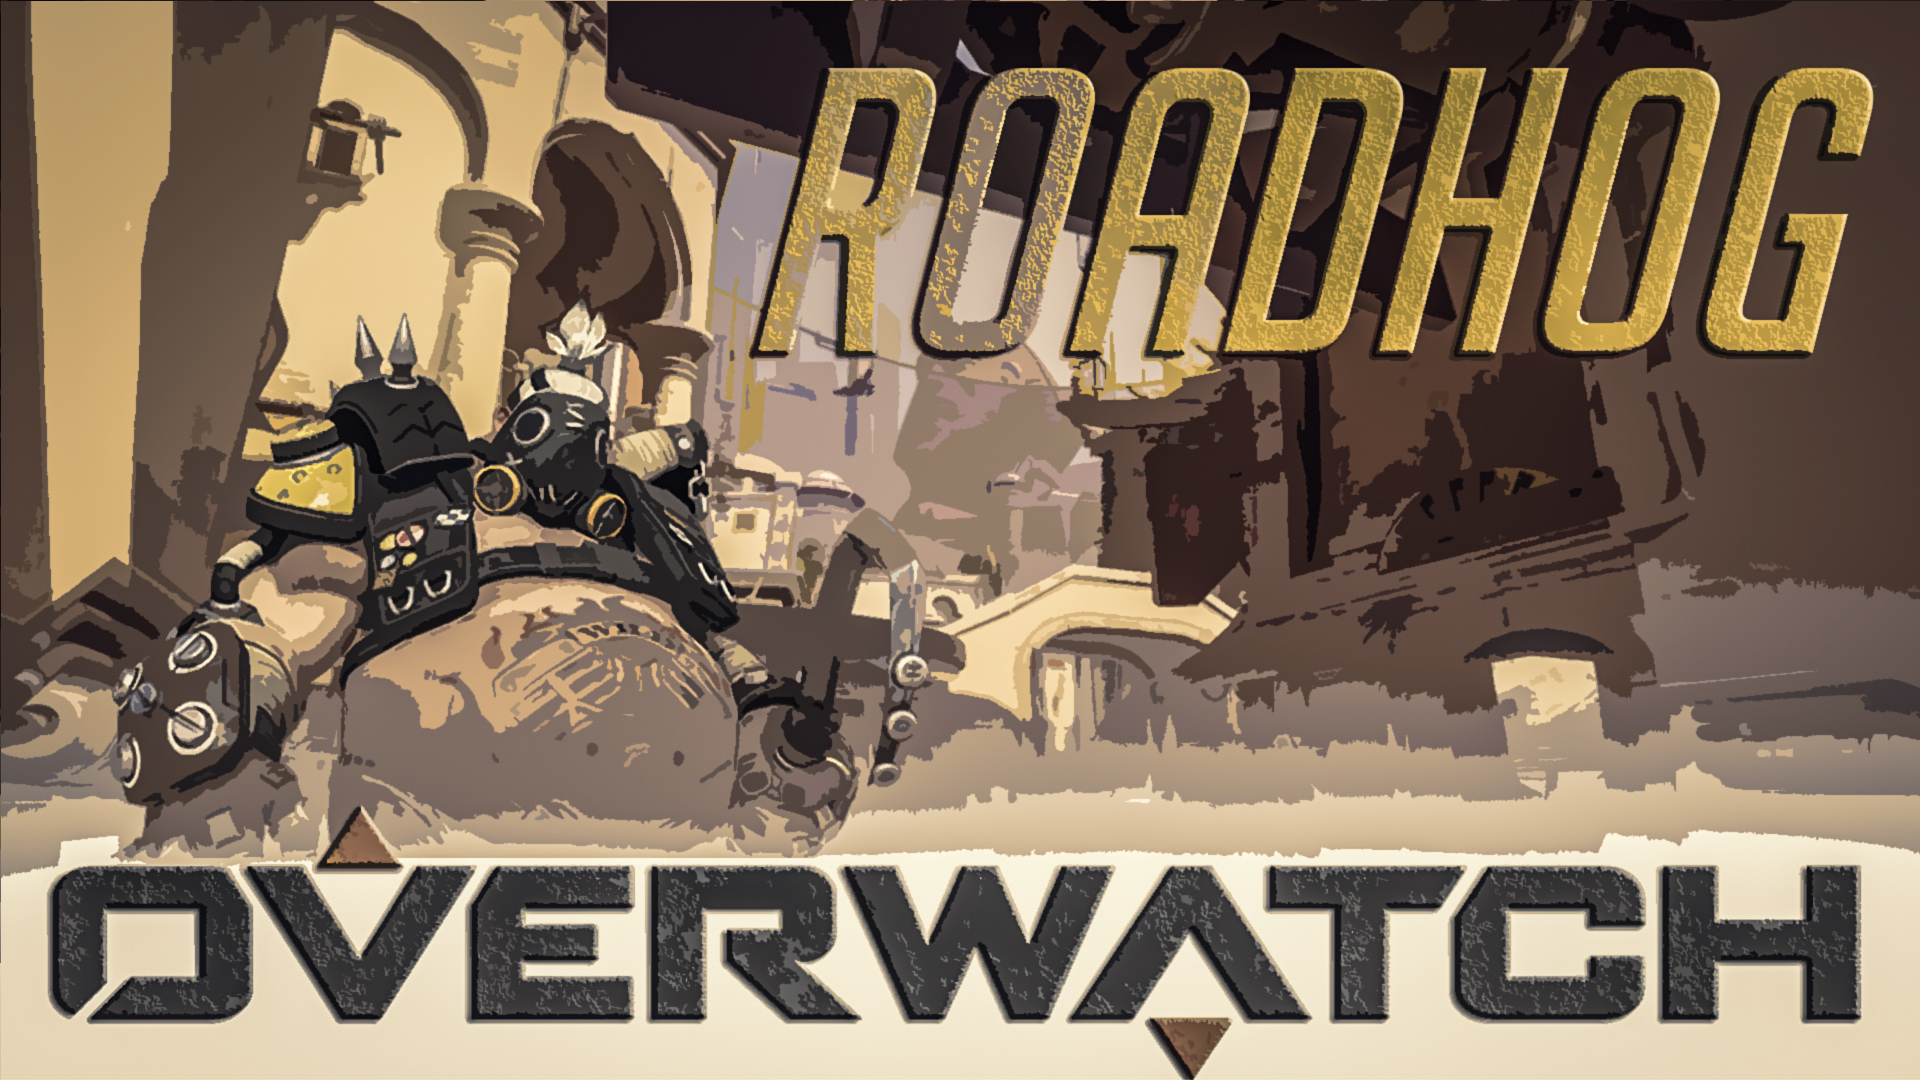 20+ Roadhog Overwatch Hd Wallpaper JPG